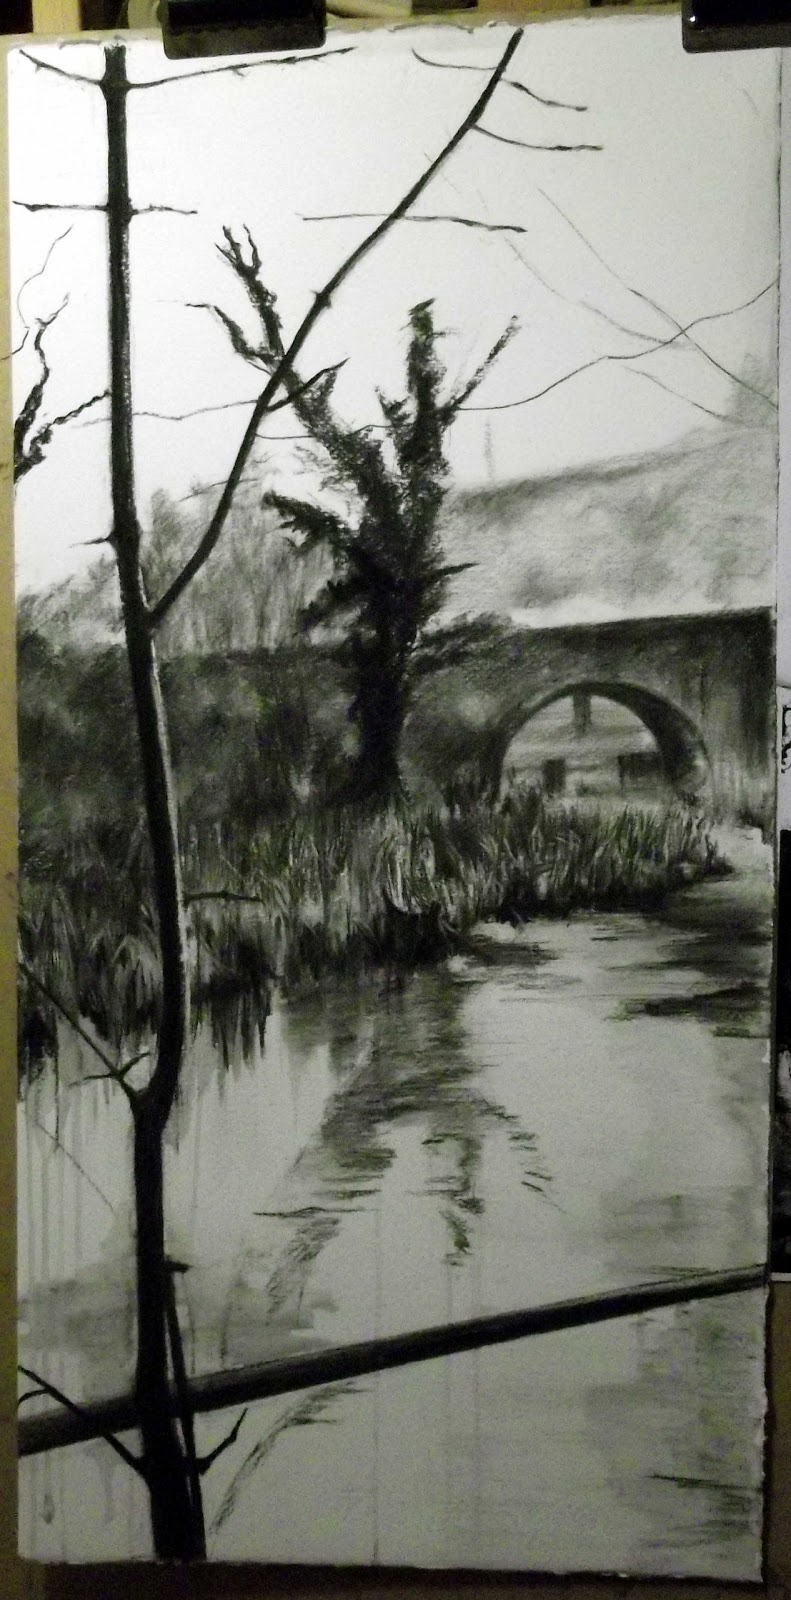 picture download Wendy rhodes artist brook. Drawing reflections charcoal